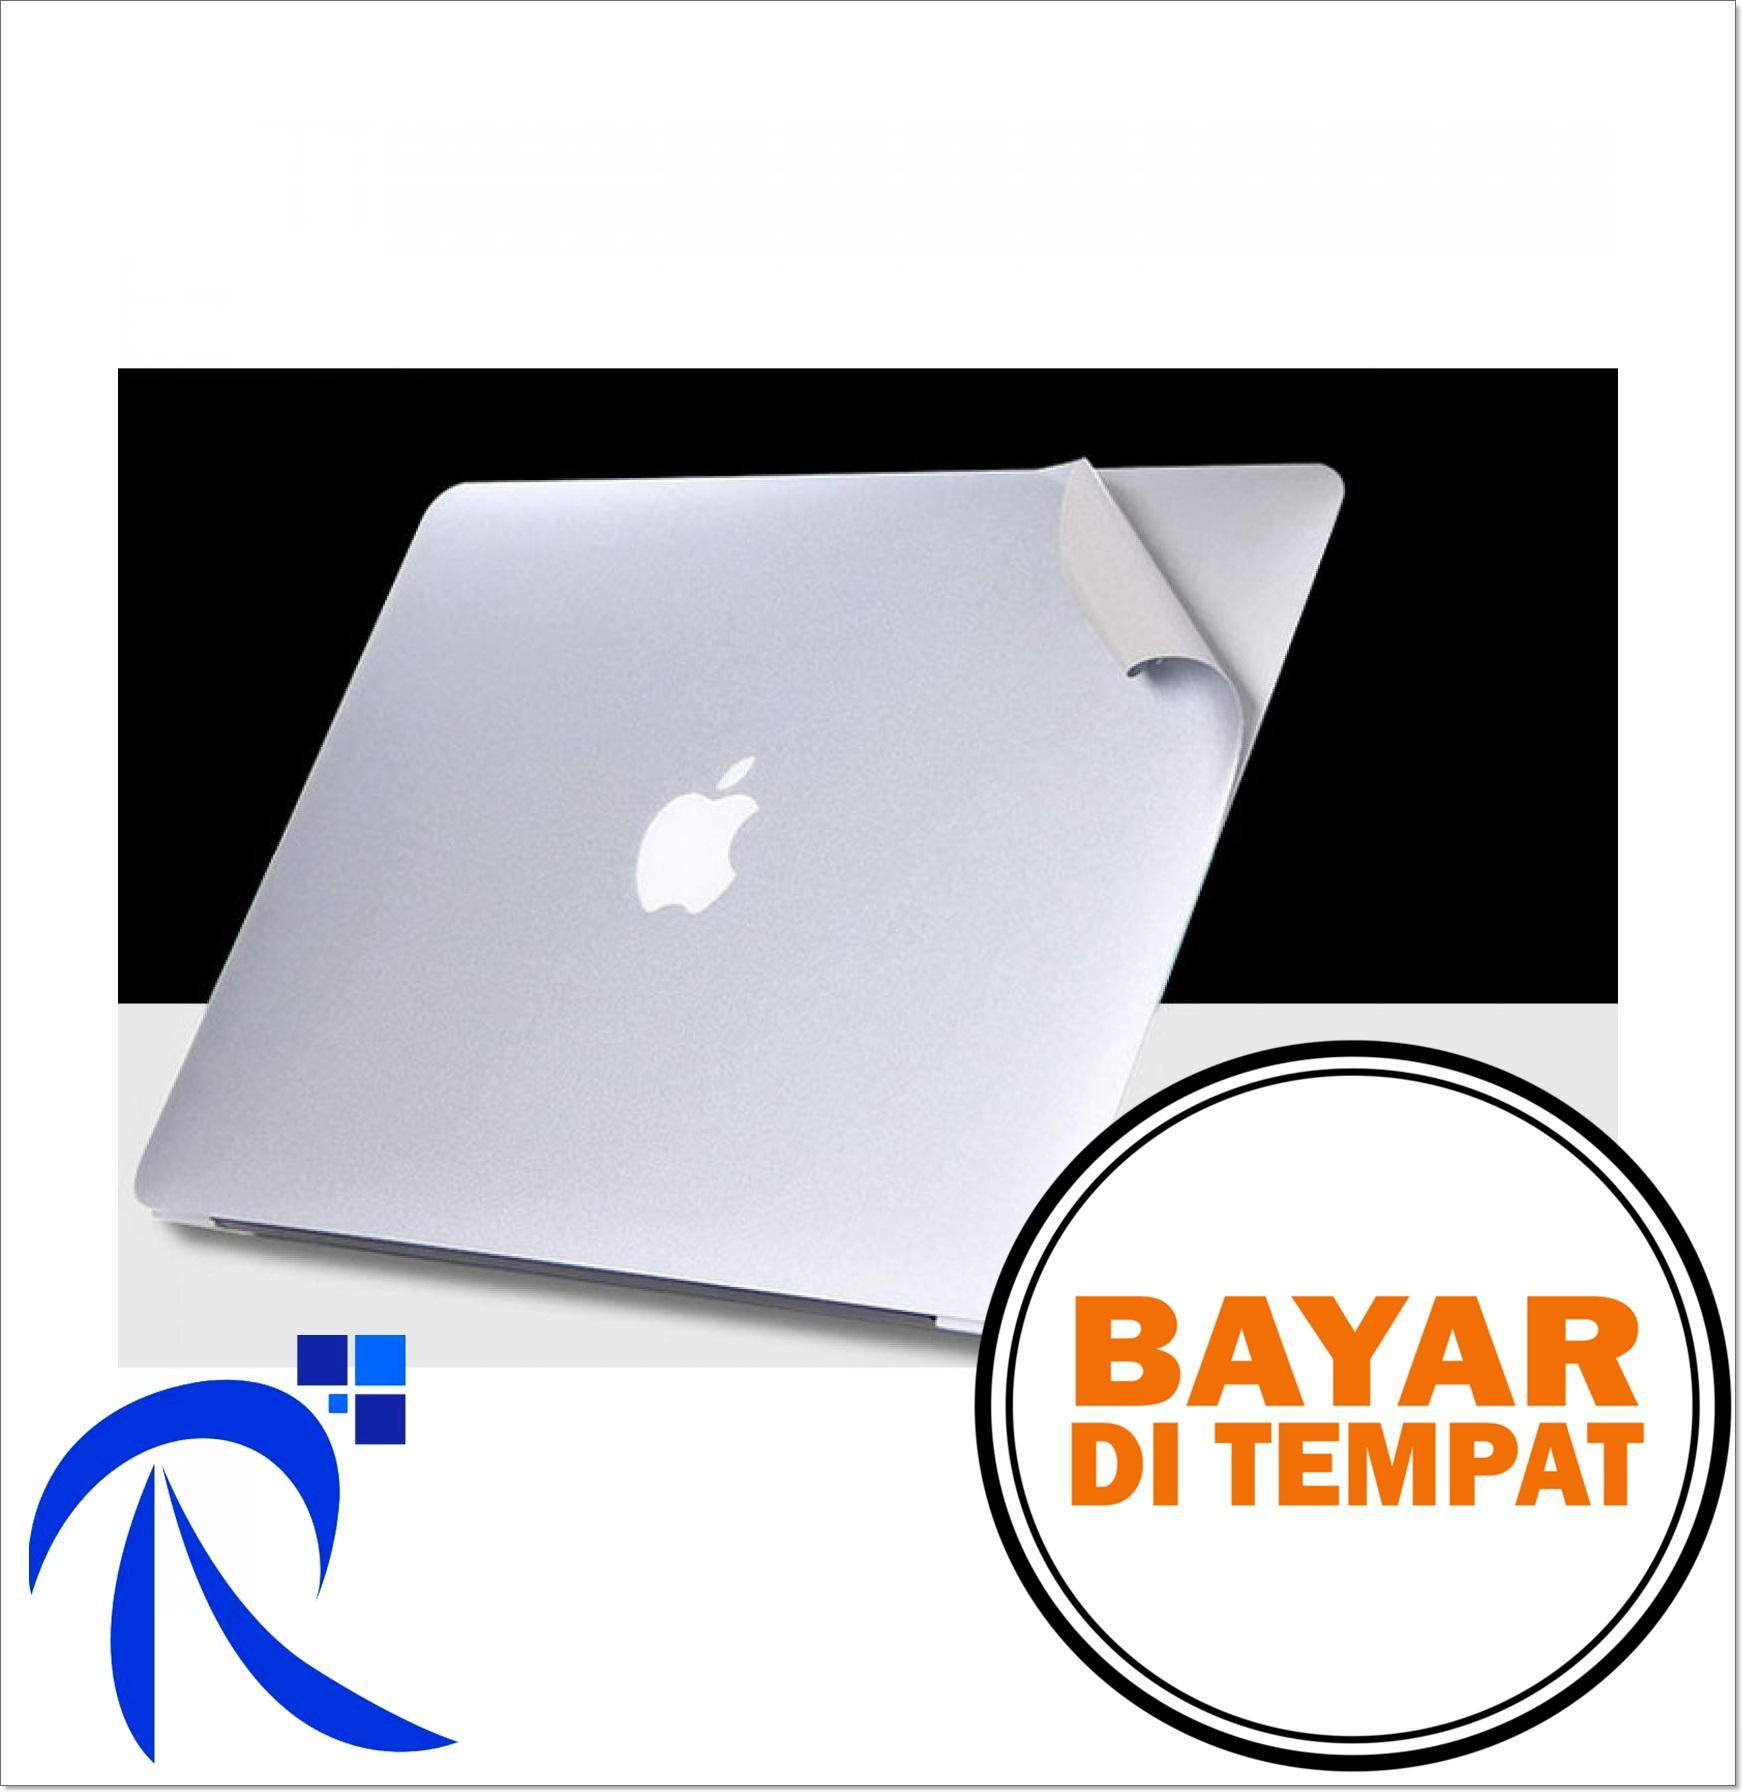 Rimas Cod Cover Protective Film Sticker For Macbook Pro 2016 15 Inch Touch Bar - Silver/perak - Stiker Protektif Pelindung Full Casing Case Laptop Mudah Praktis Simpel Berkualitas Menarik - Free Ongkir By Rimas Tech.